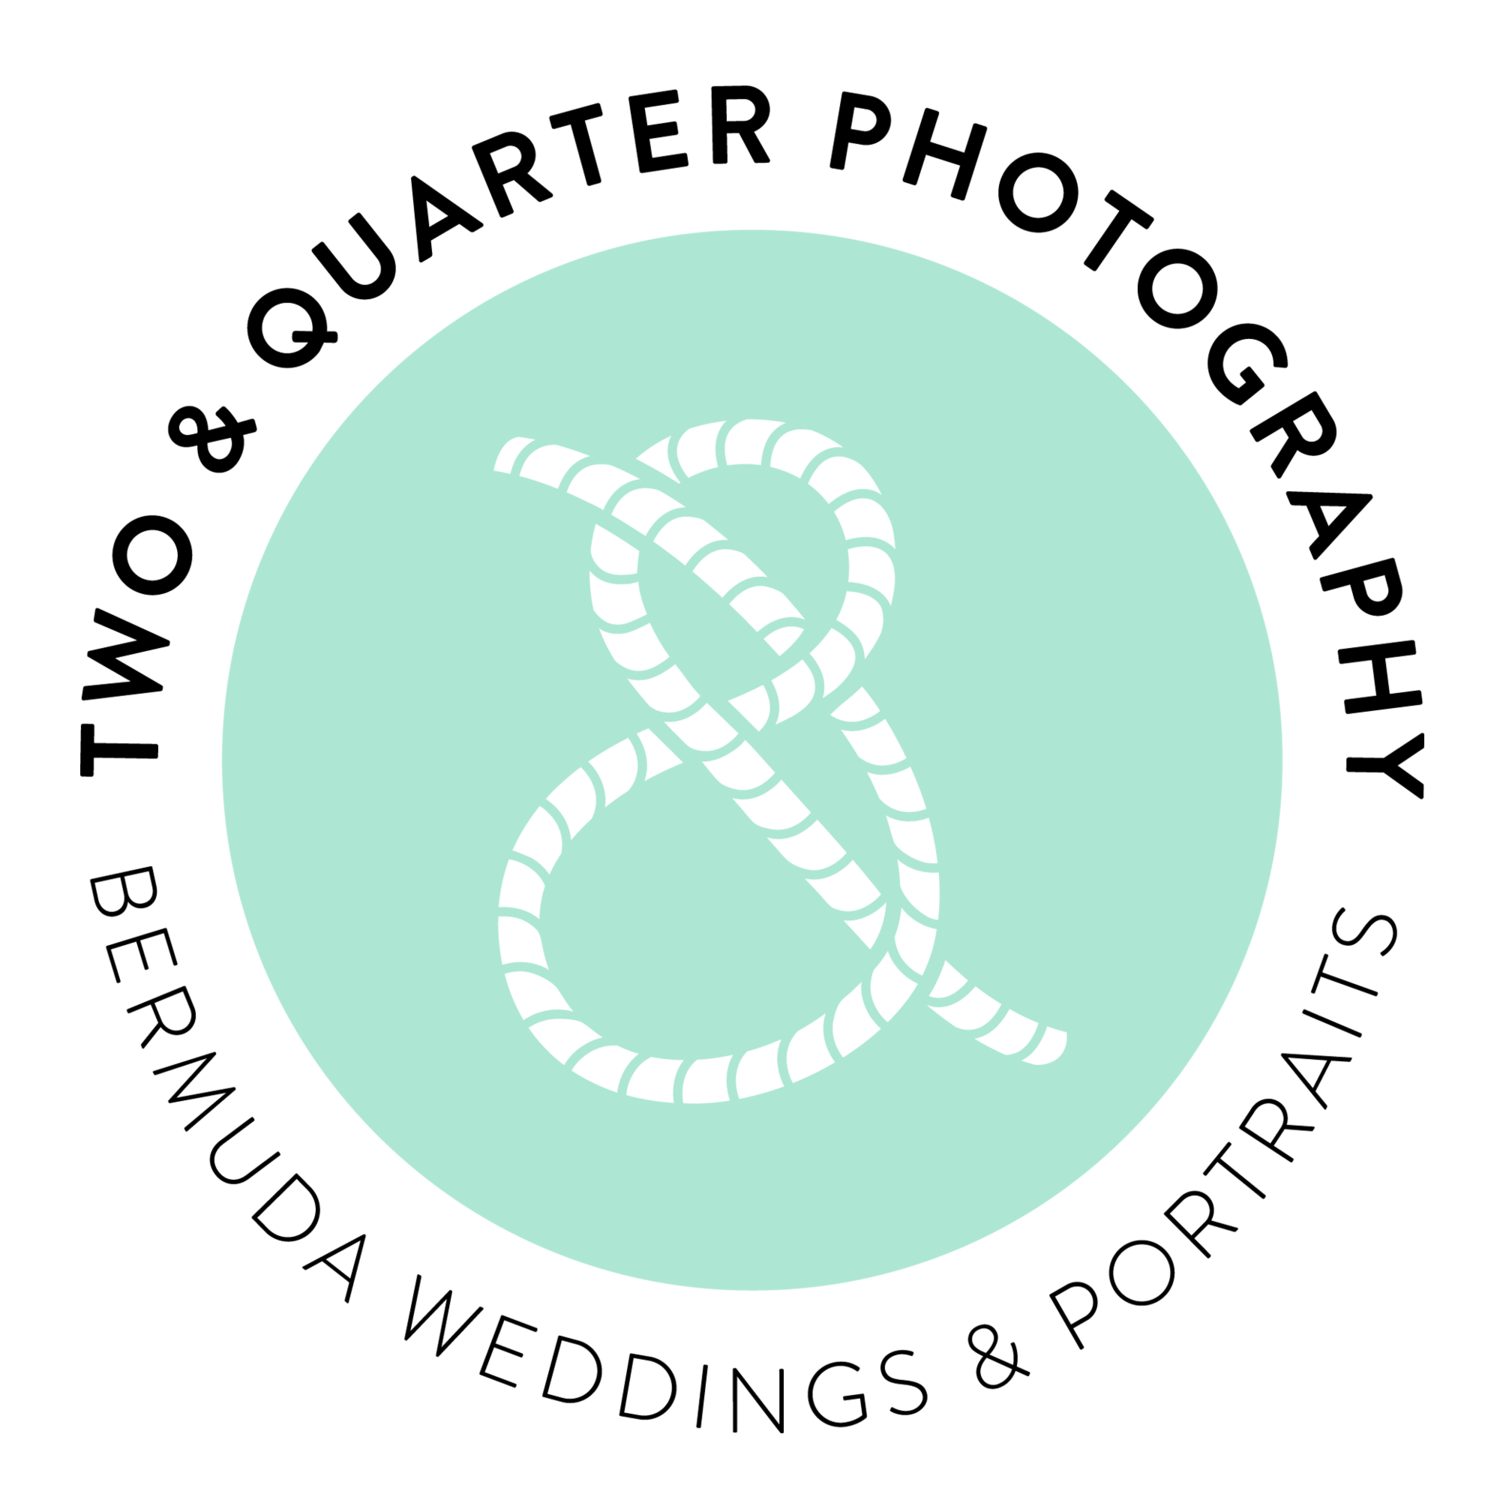 Two & Quarter Photography Ltd | Bermuda Wedding and Portrait Photographers